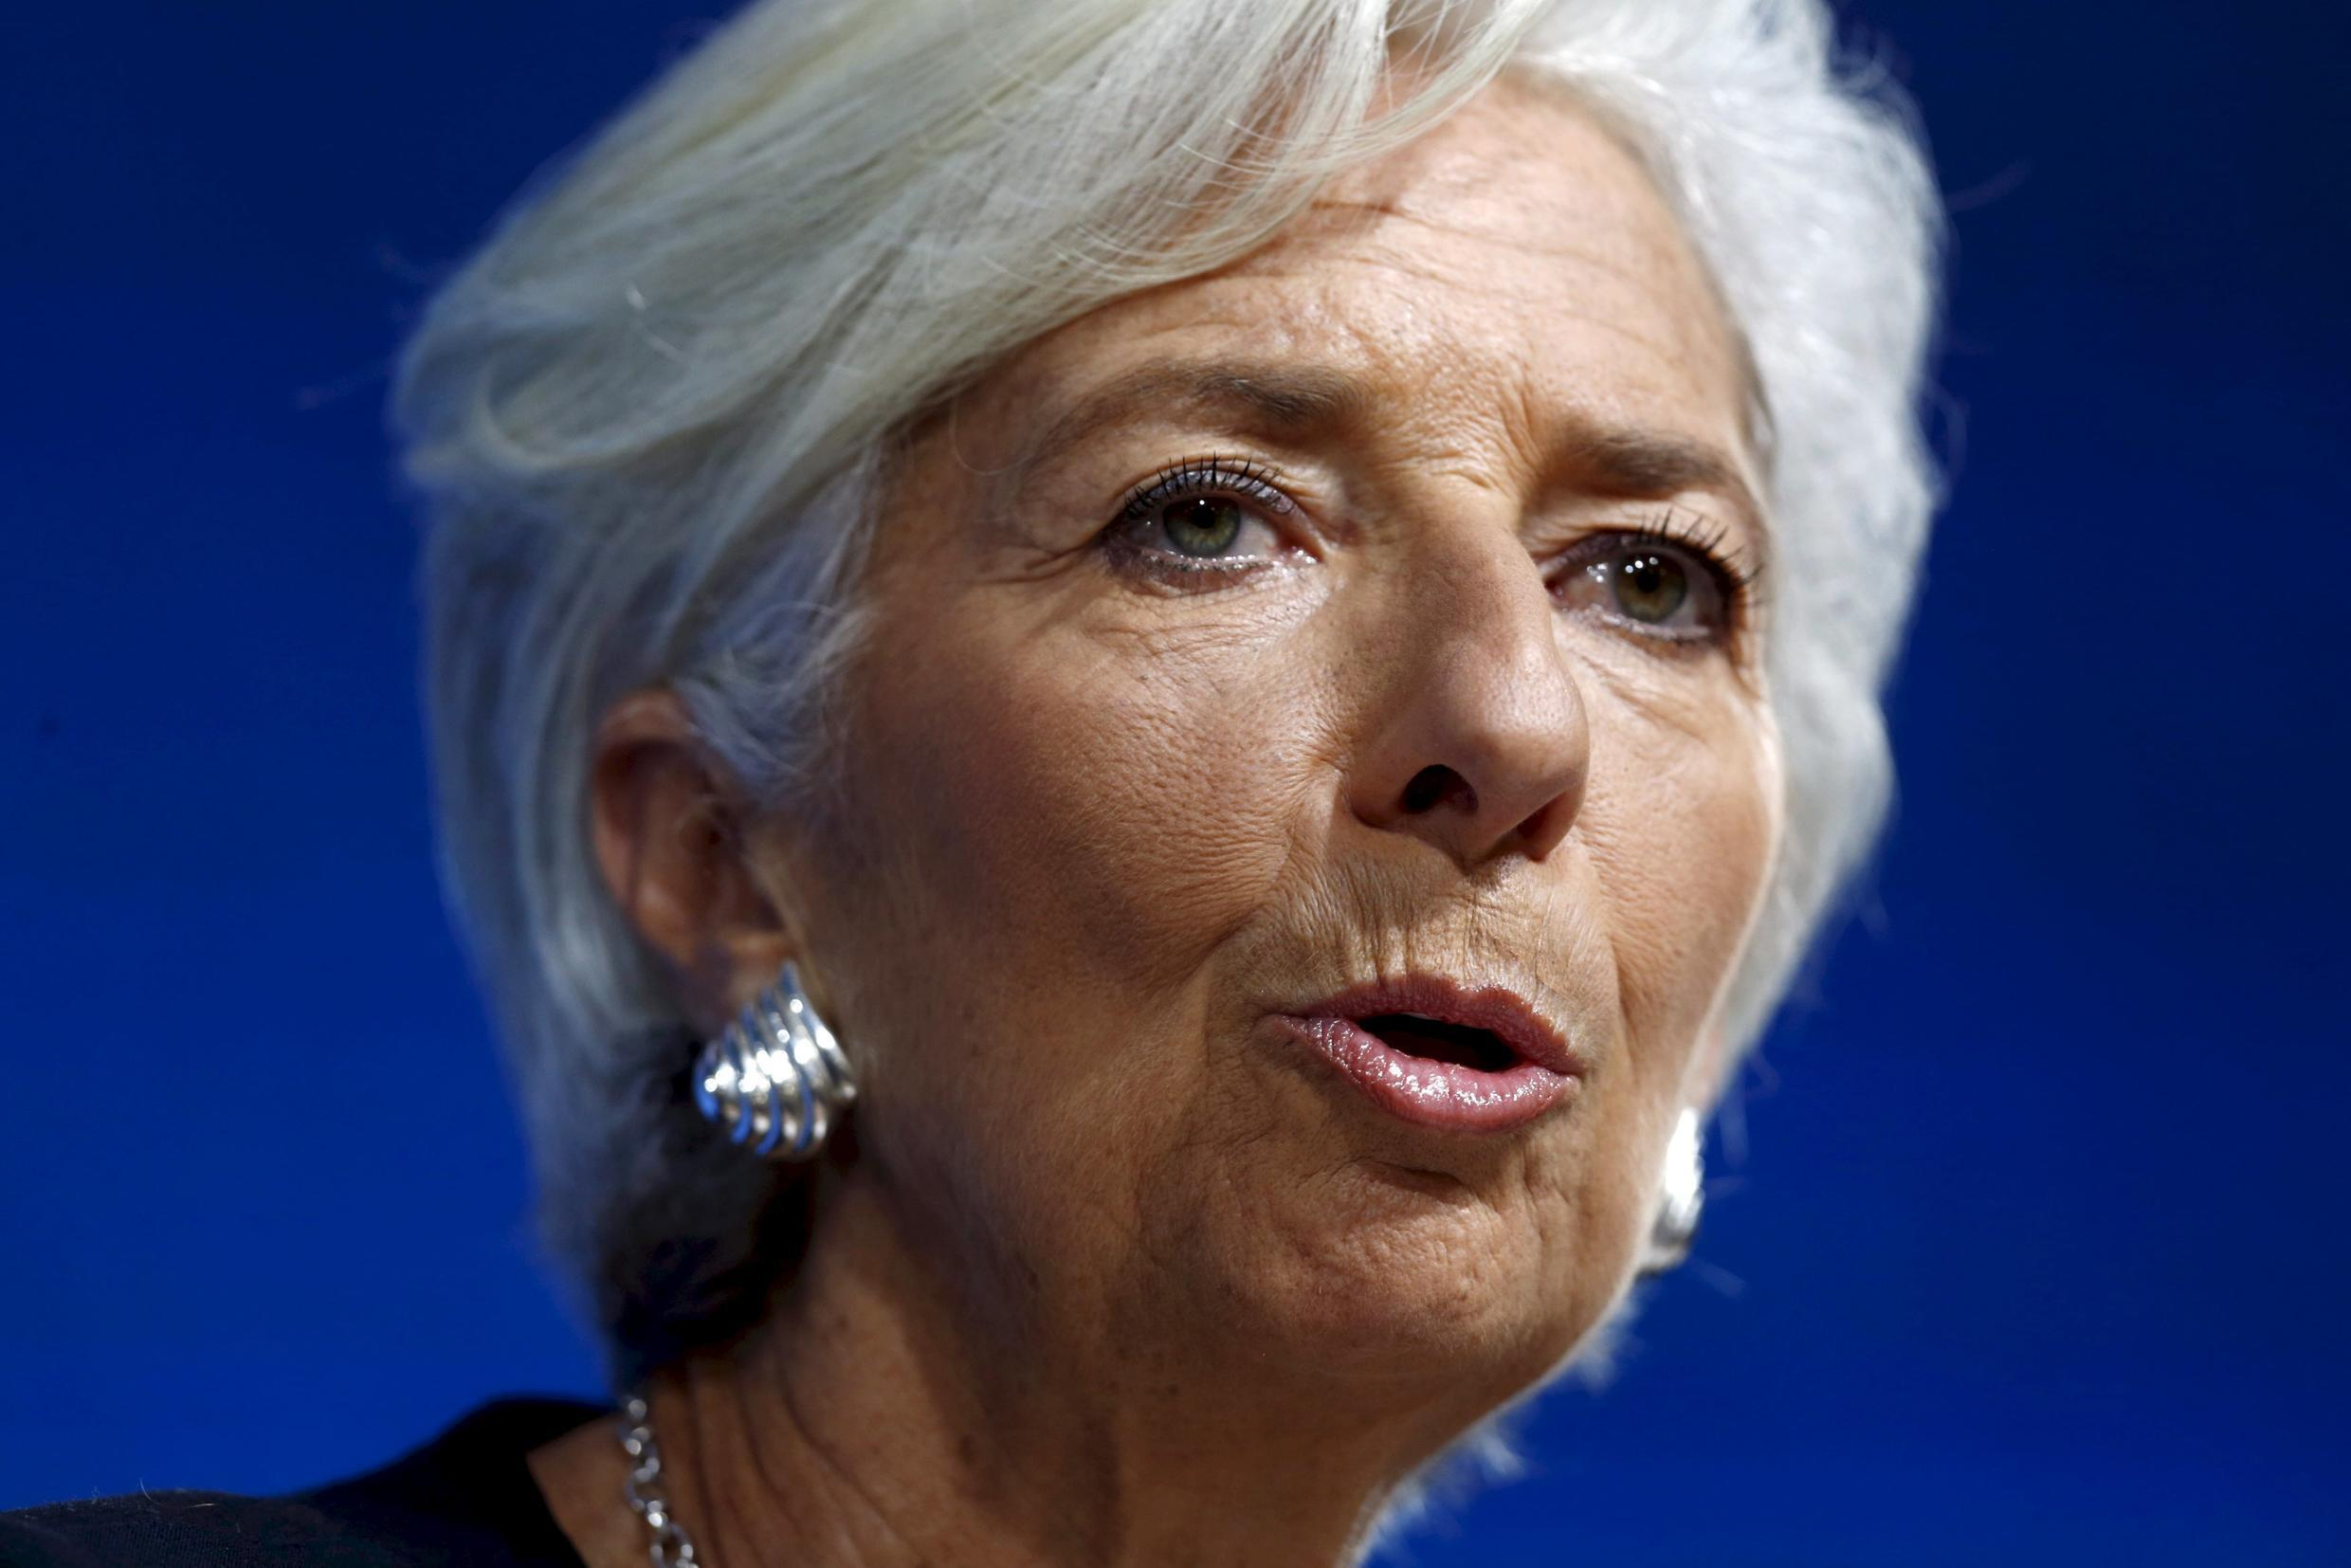 Going for seconds - lMF chief Christine Lagarde